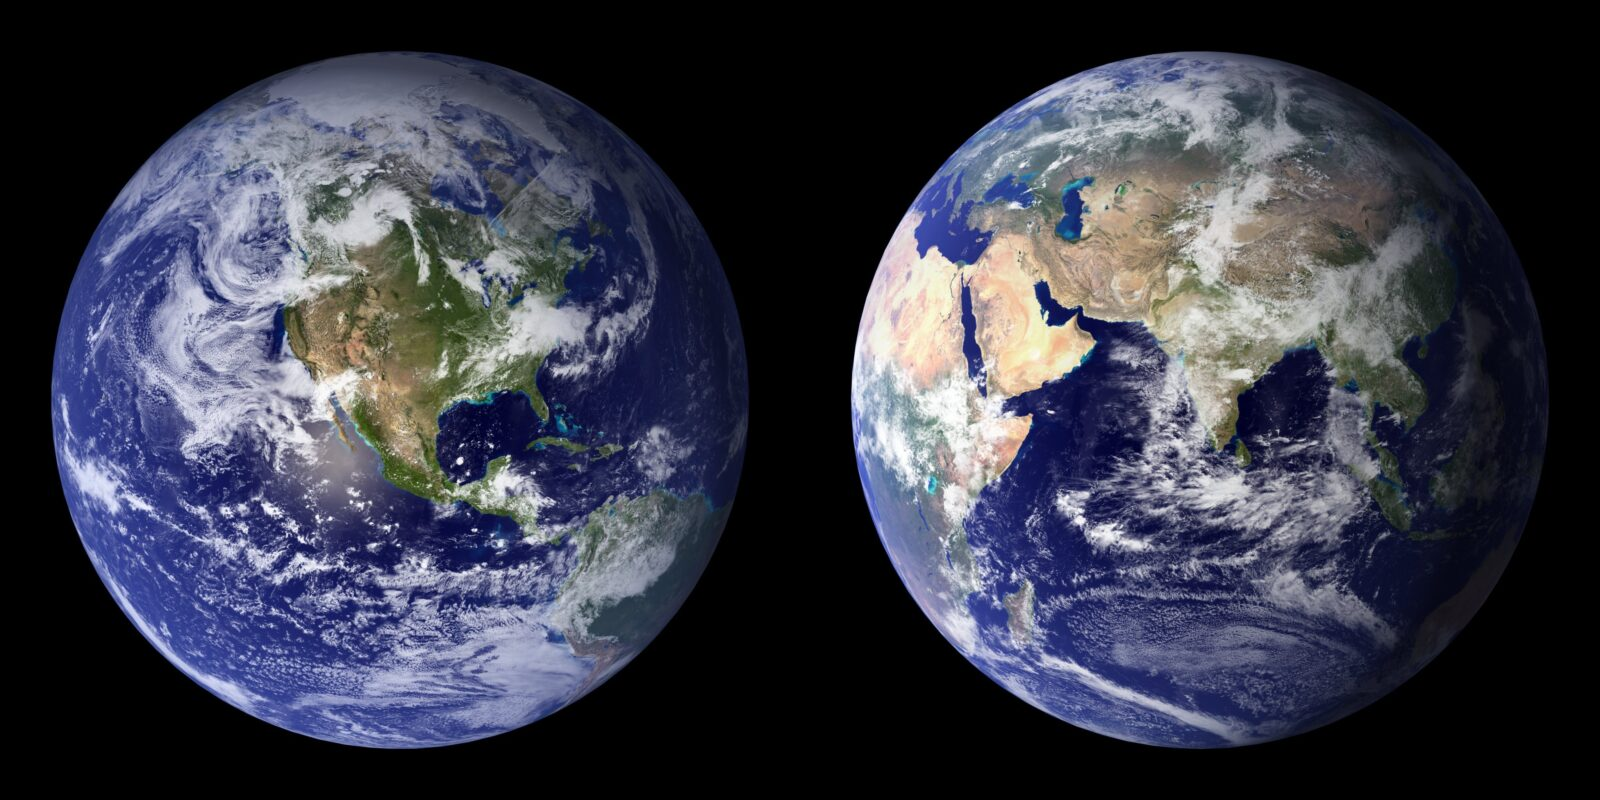 earth_planet_front_side